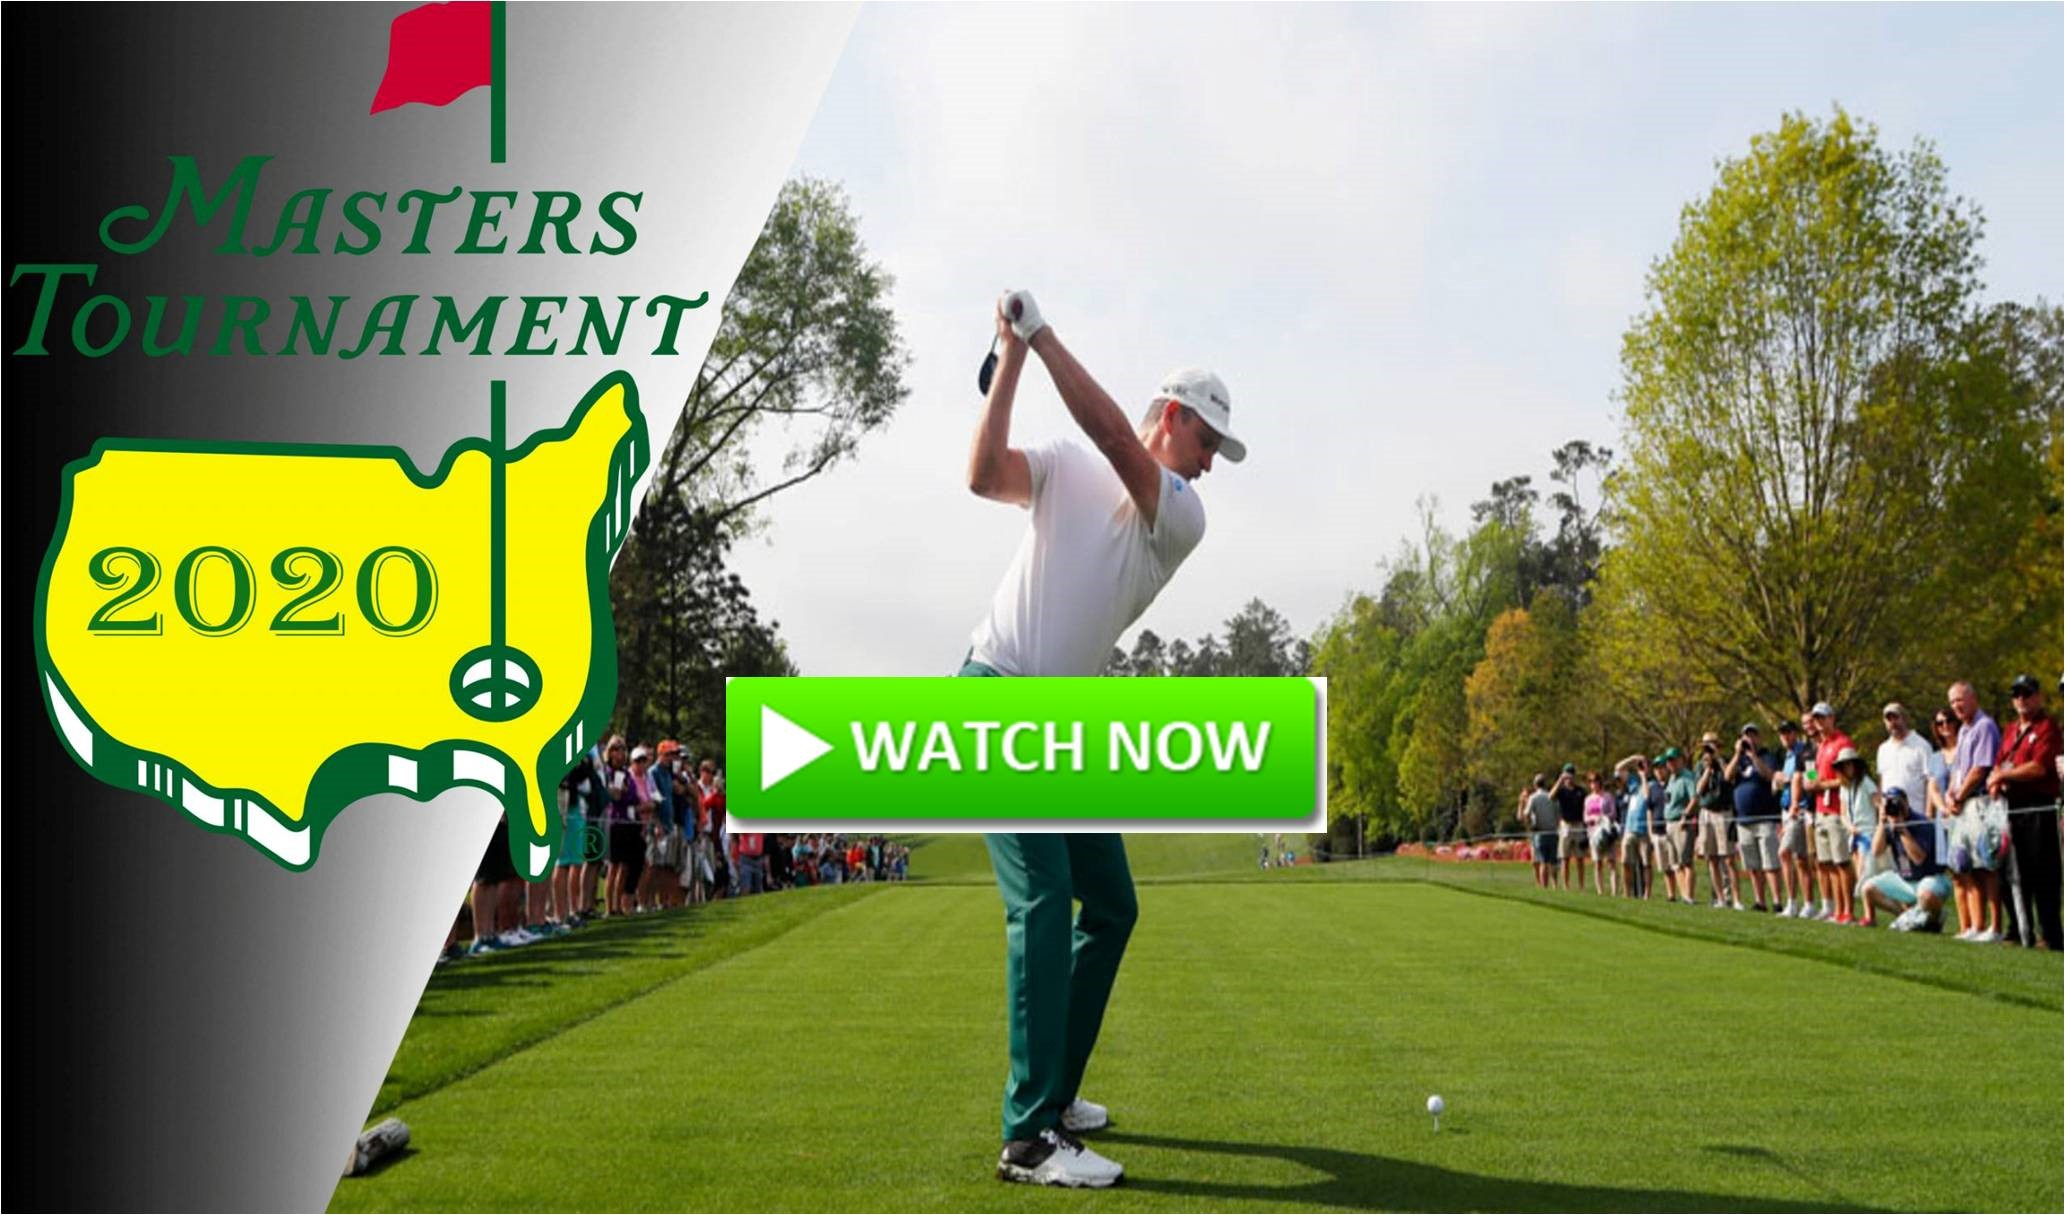 The Masters Golf 2020 Live Reddit Streaming FREE: How to watch 2020 Masters Tournament Online । Tee Times, Day 1 to 4, TV channel, golf coverage - Programming Insider